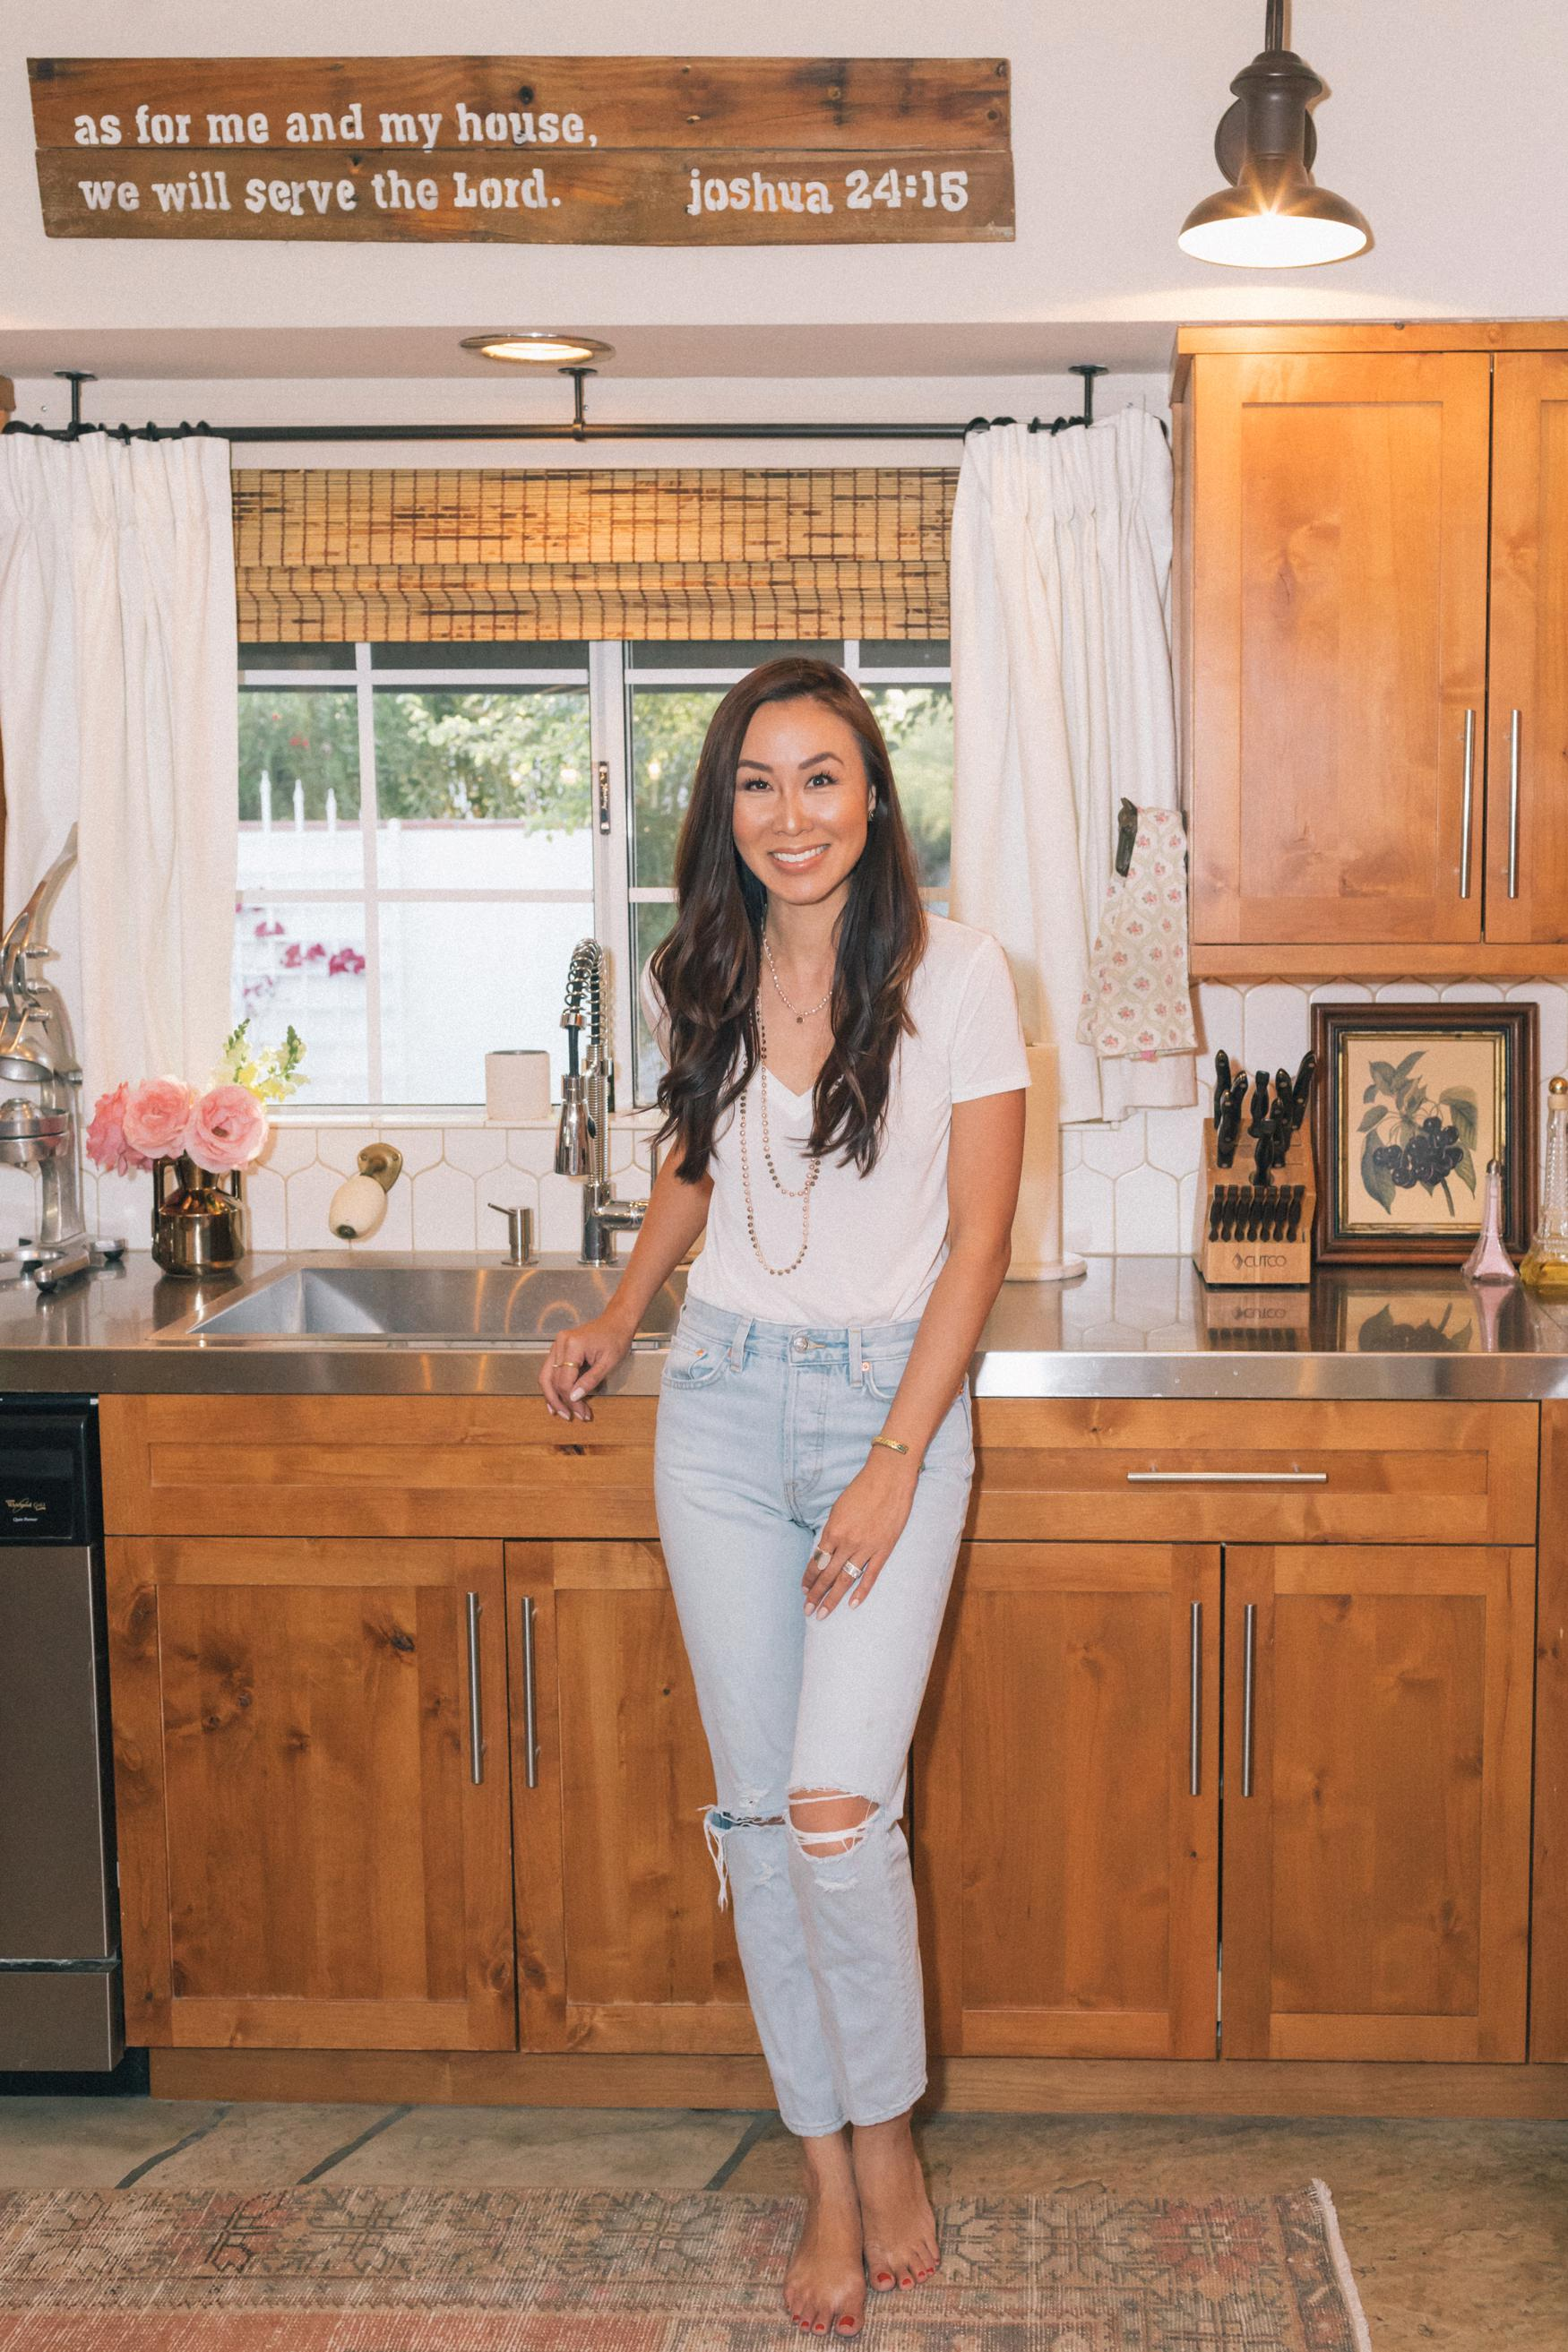 lifestyle home blogger Diana Elizabeth - adding window panes to already existing windows so easy with New Panes. A review on the blog of before and afters